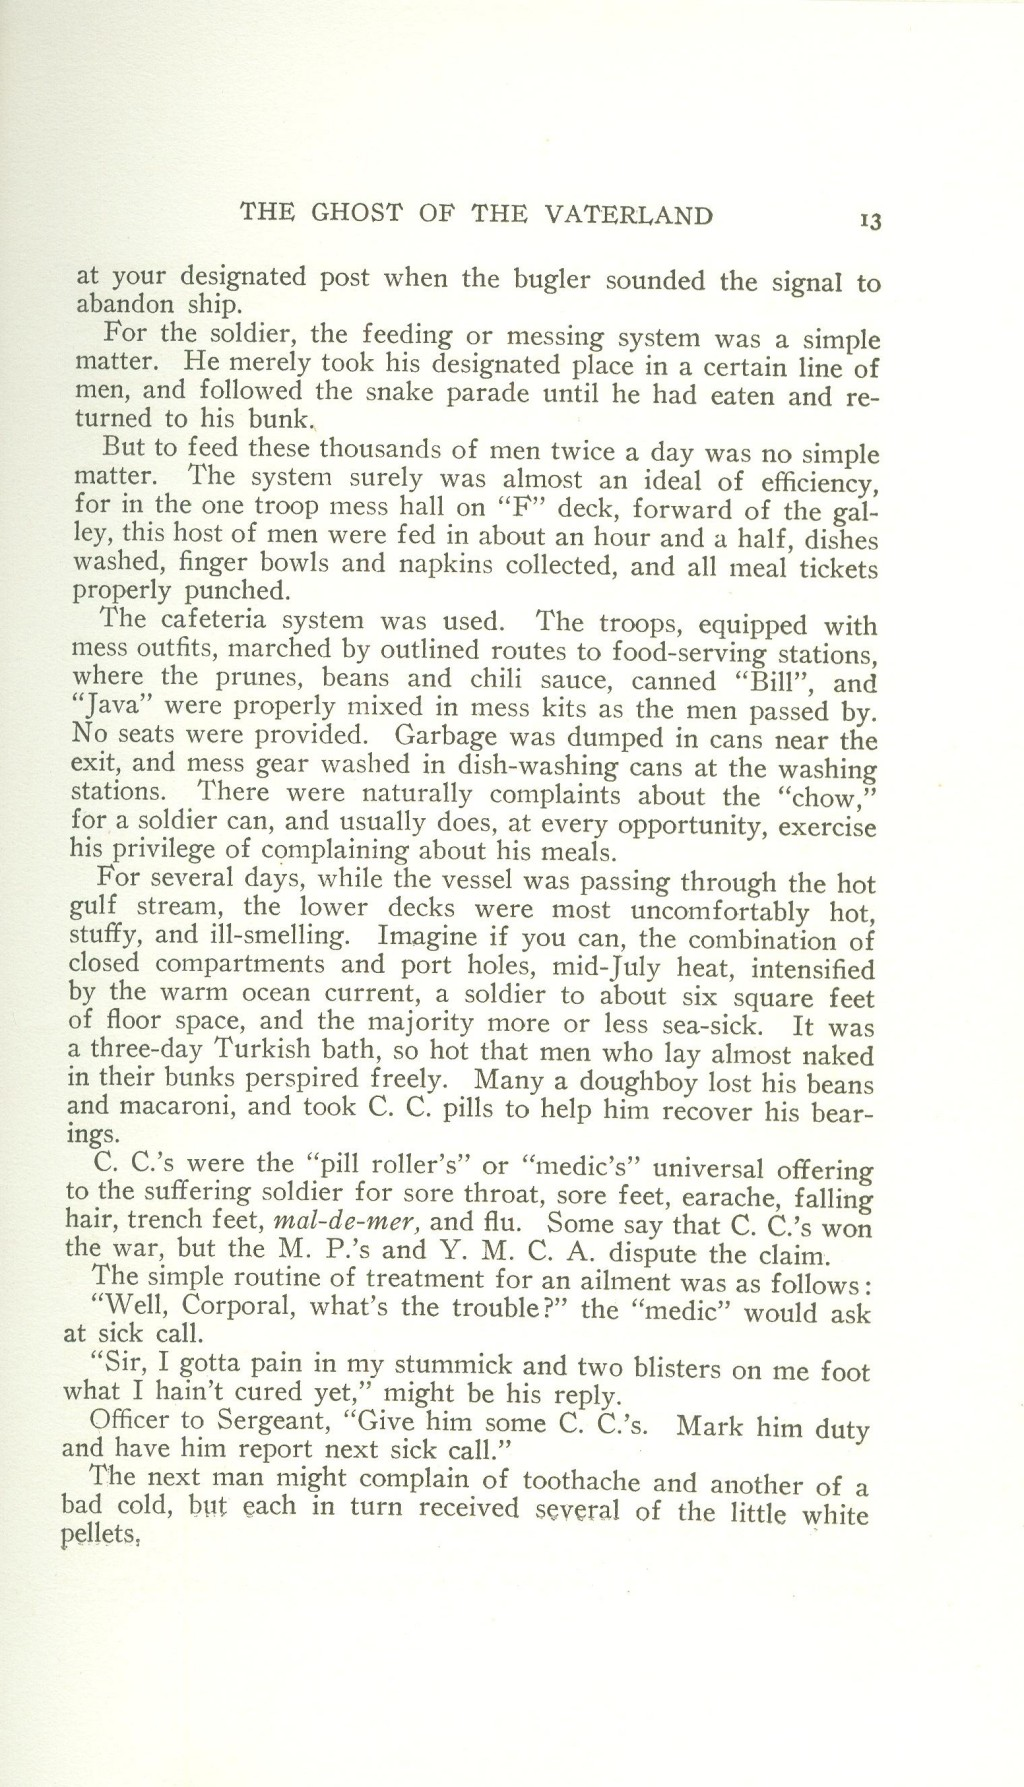 Veterans 314th Infantry Regiment A.E.F. - Under The Lorraine Cross - book by Arthur H. Joel - 1921 - Page 013